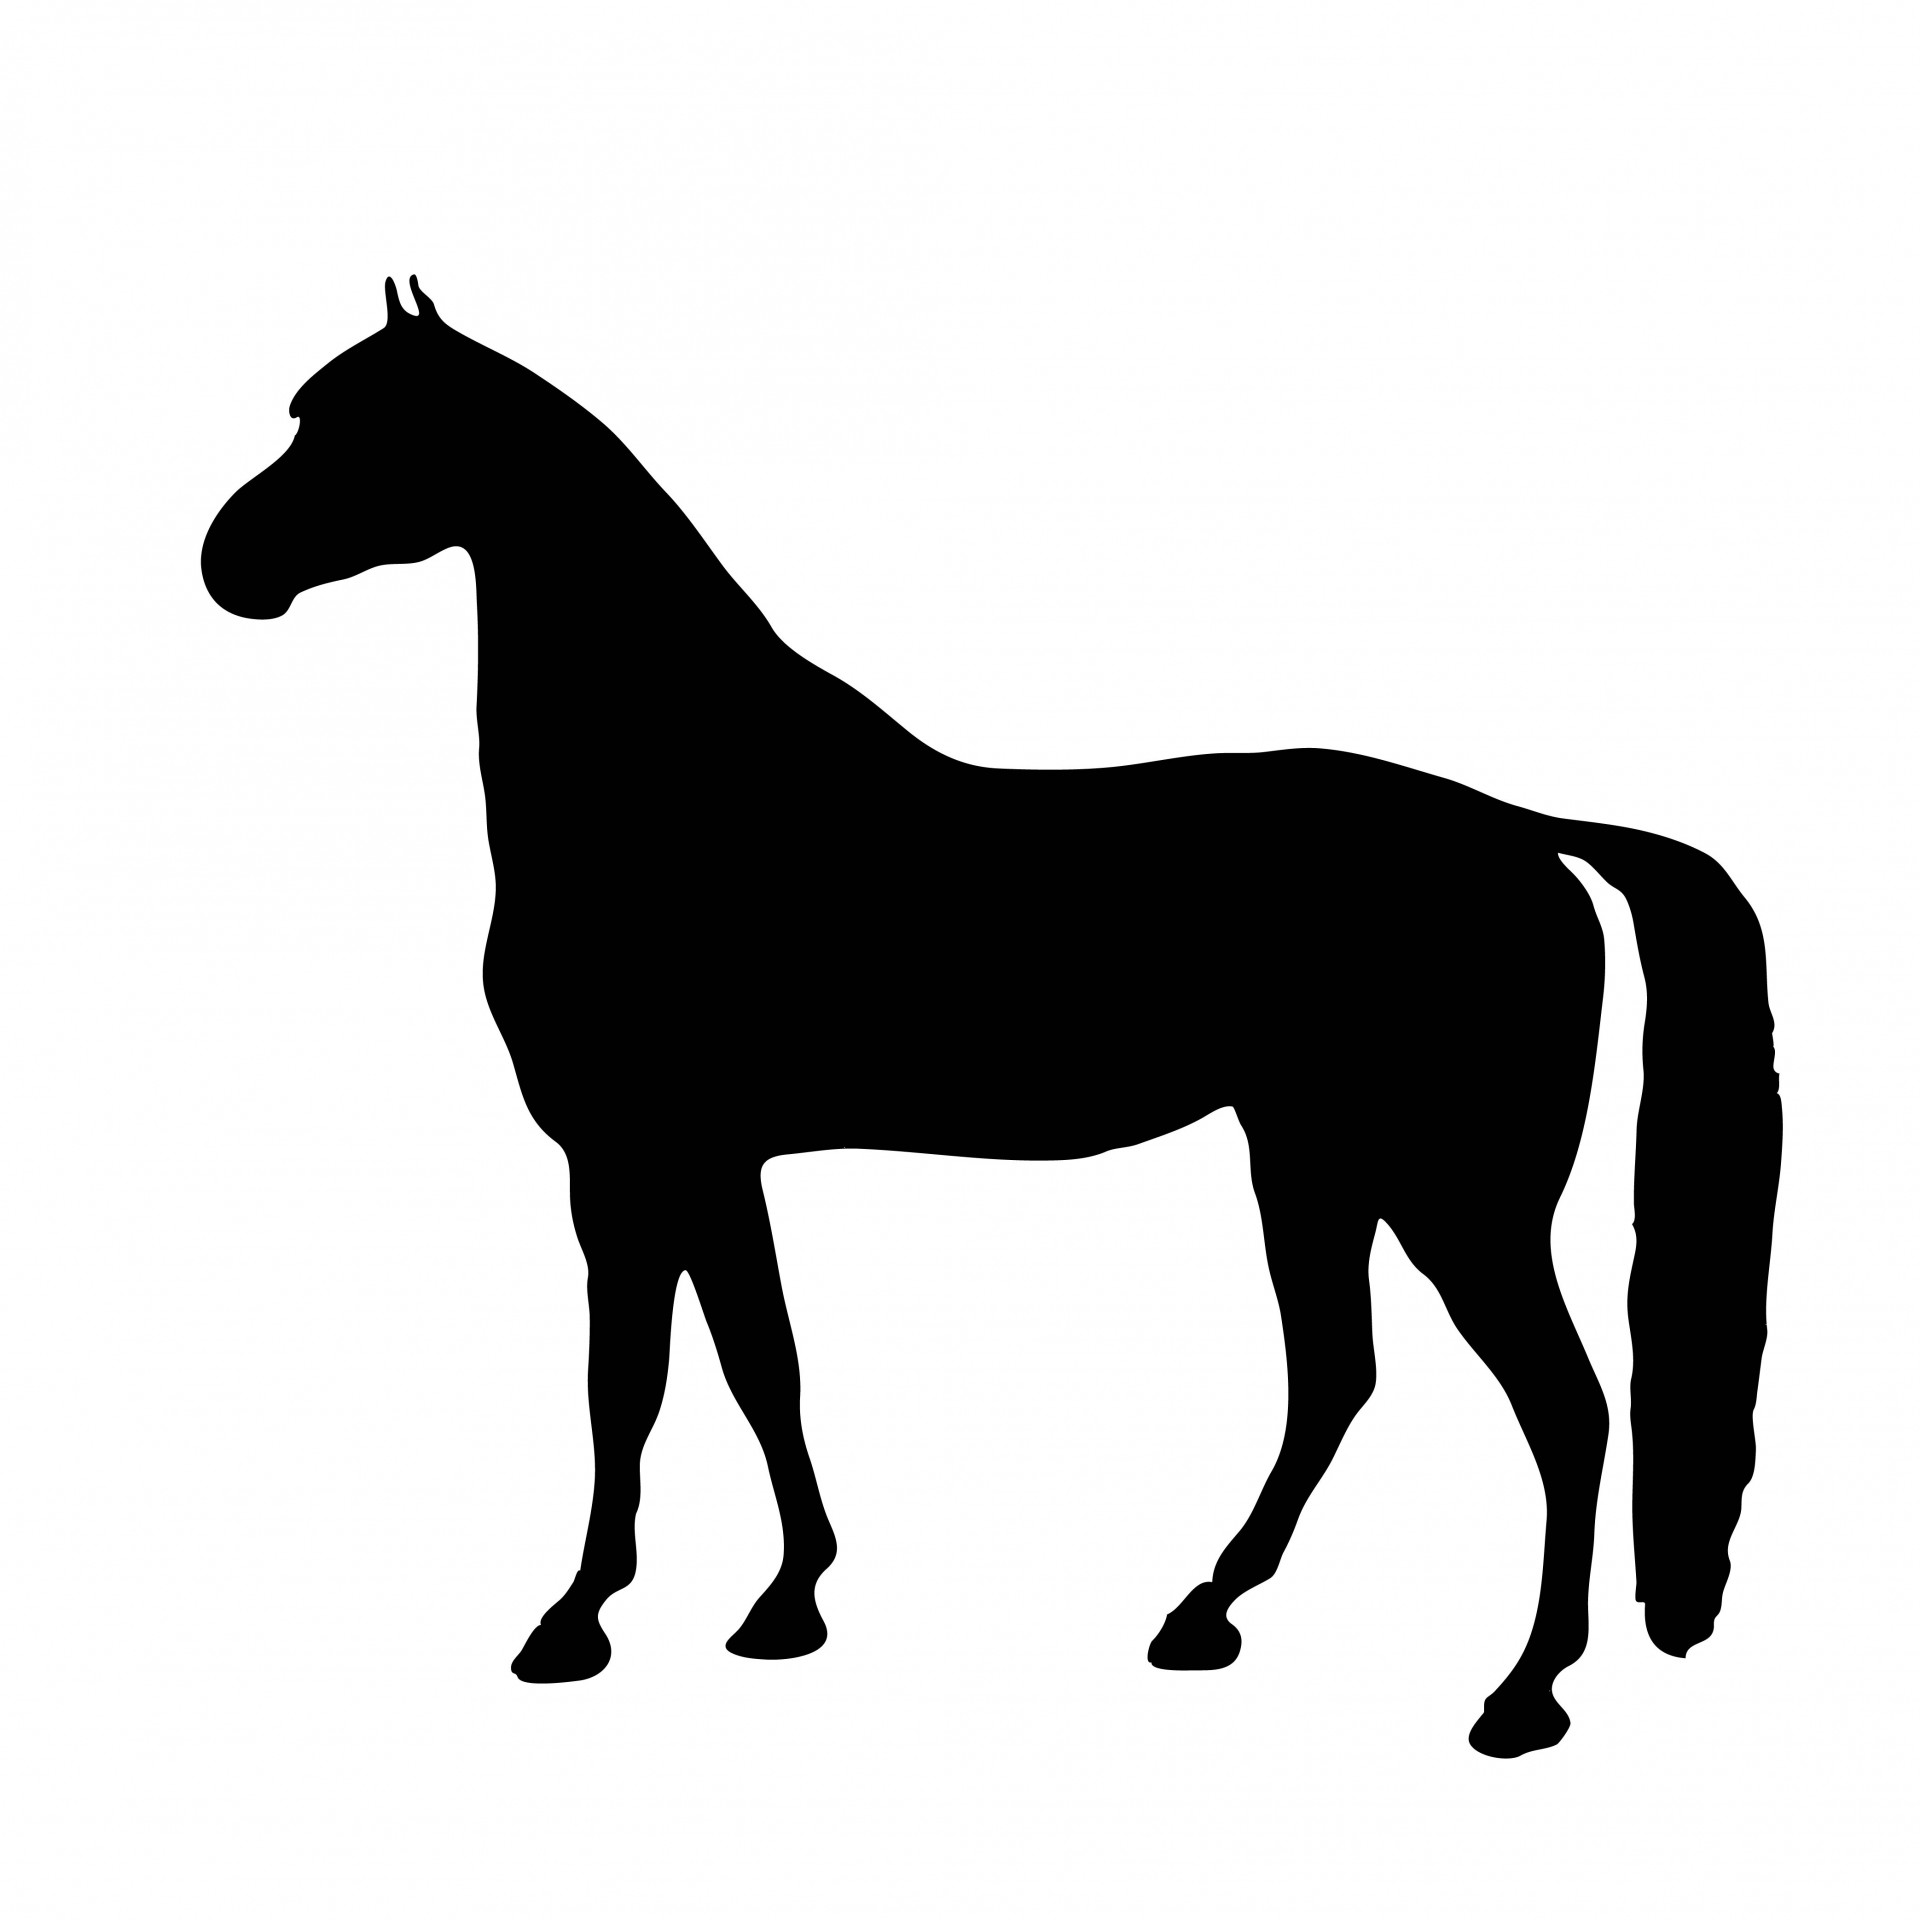 Horse Silhouette Clipart Free Stock Photo.